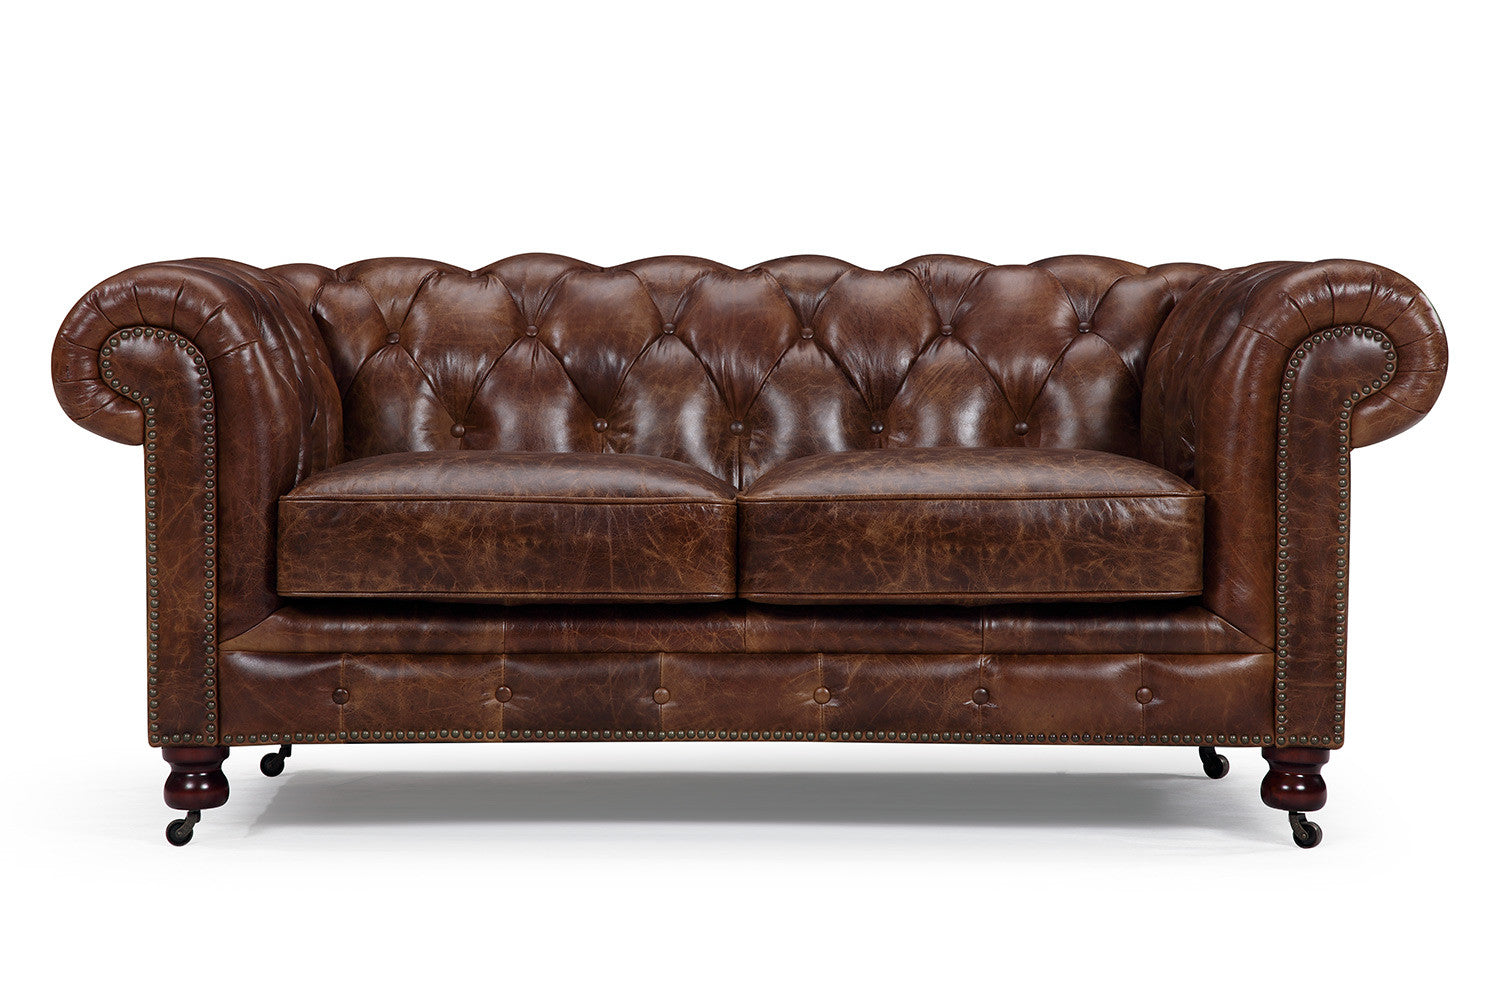 Canap chesterfield en cuir kensington 2 places rose moore - Canape chesterfield cuir 2 places ...